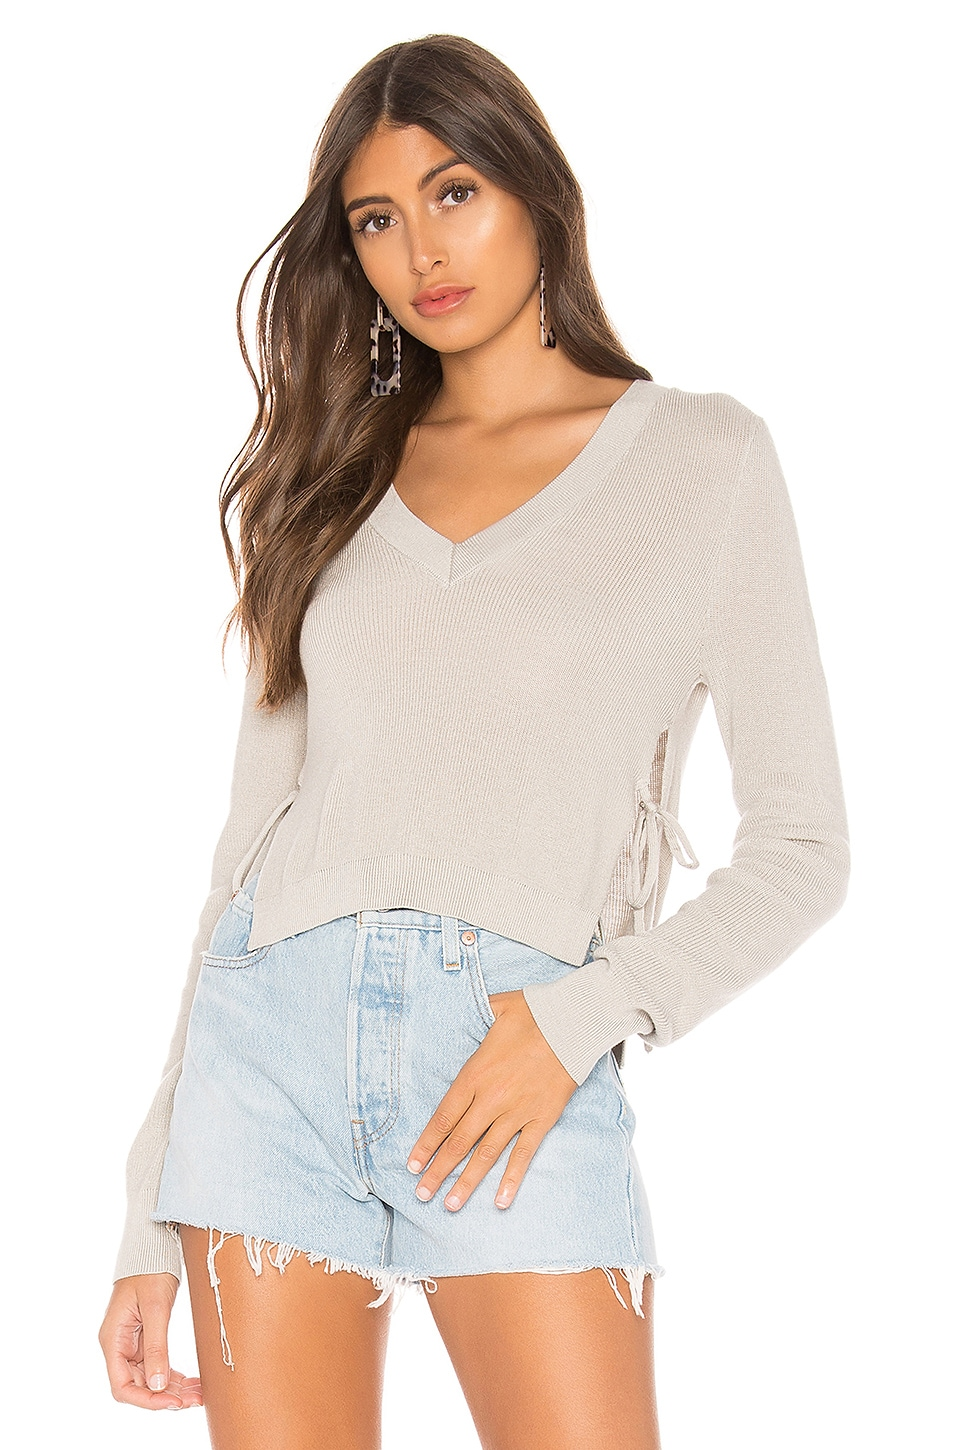 MAJORELLE Stay Together Sweater in Silver Grey